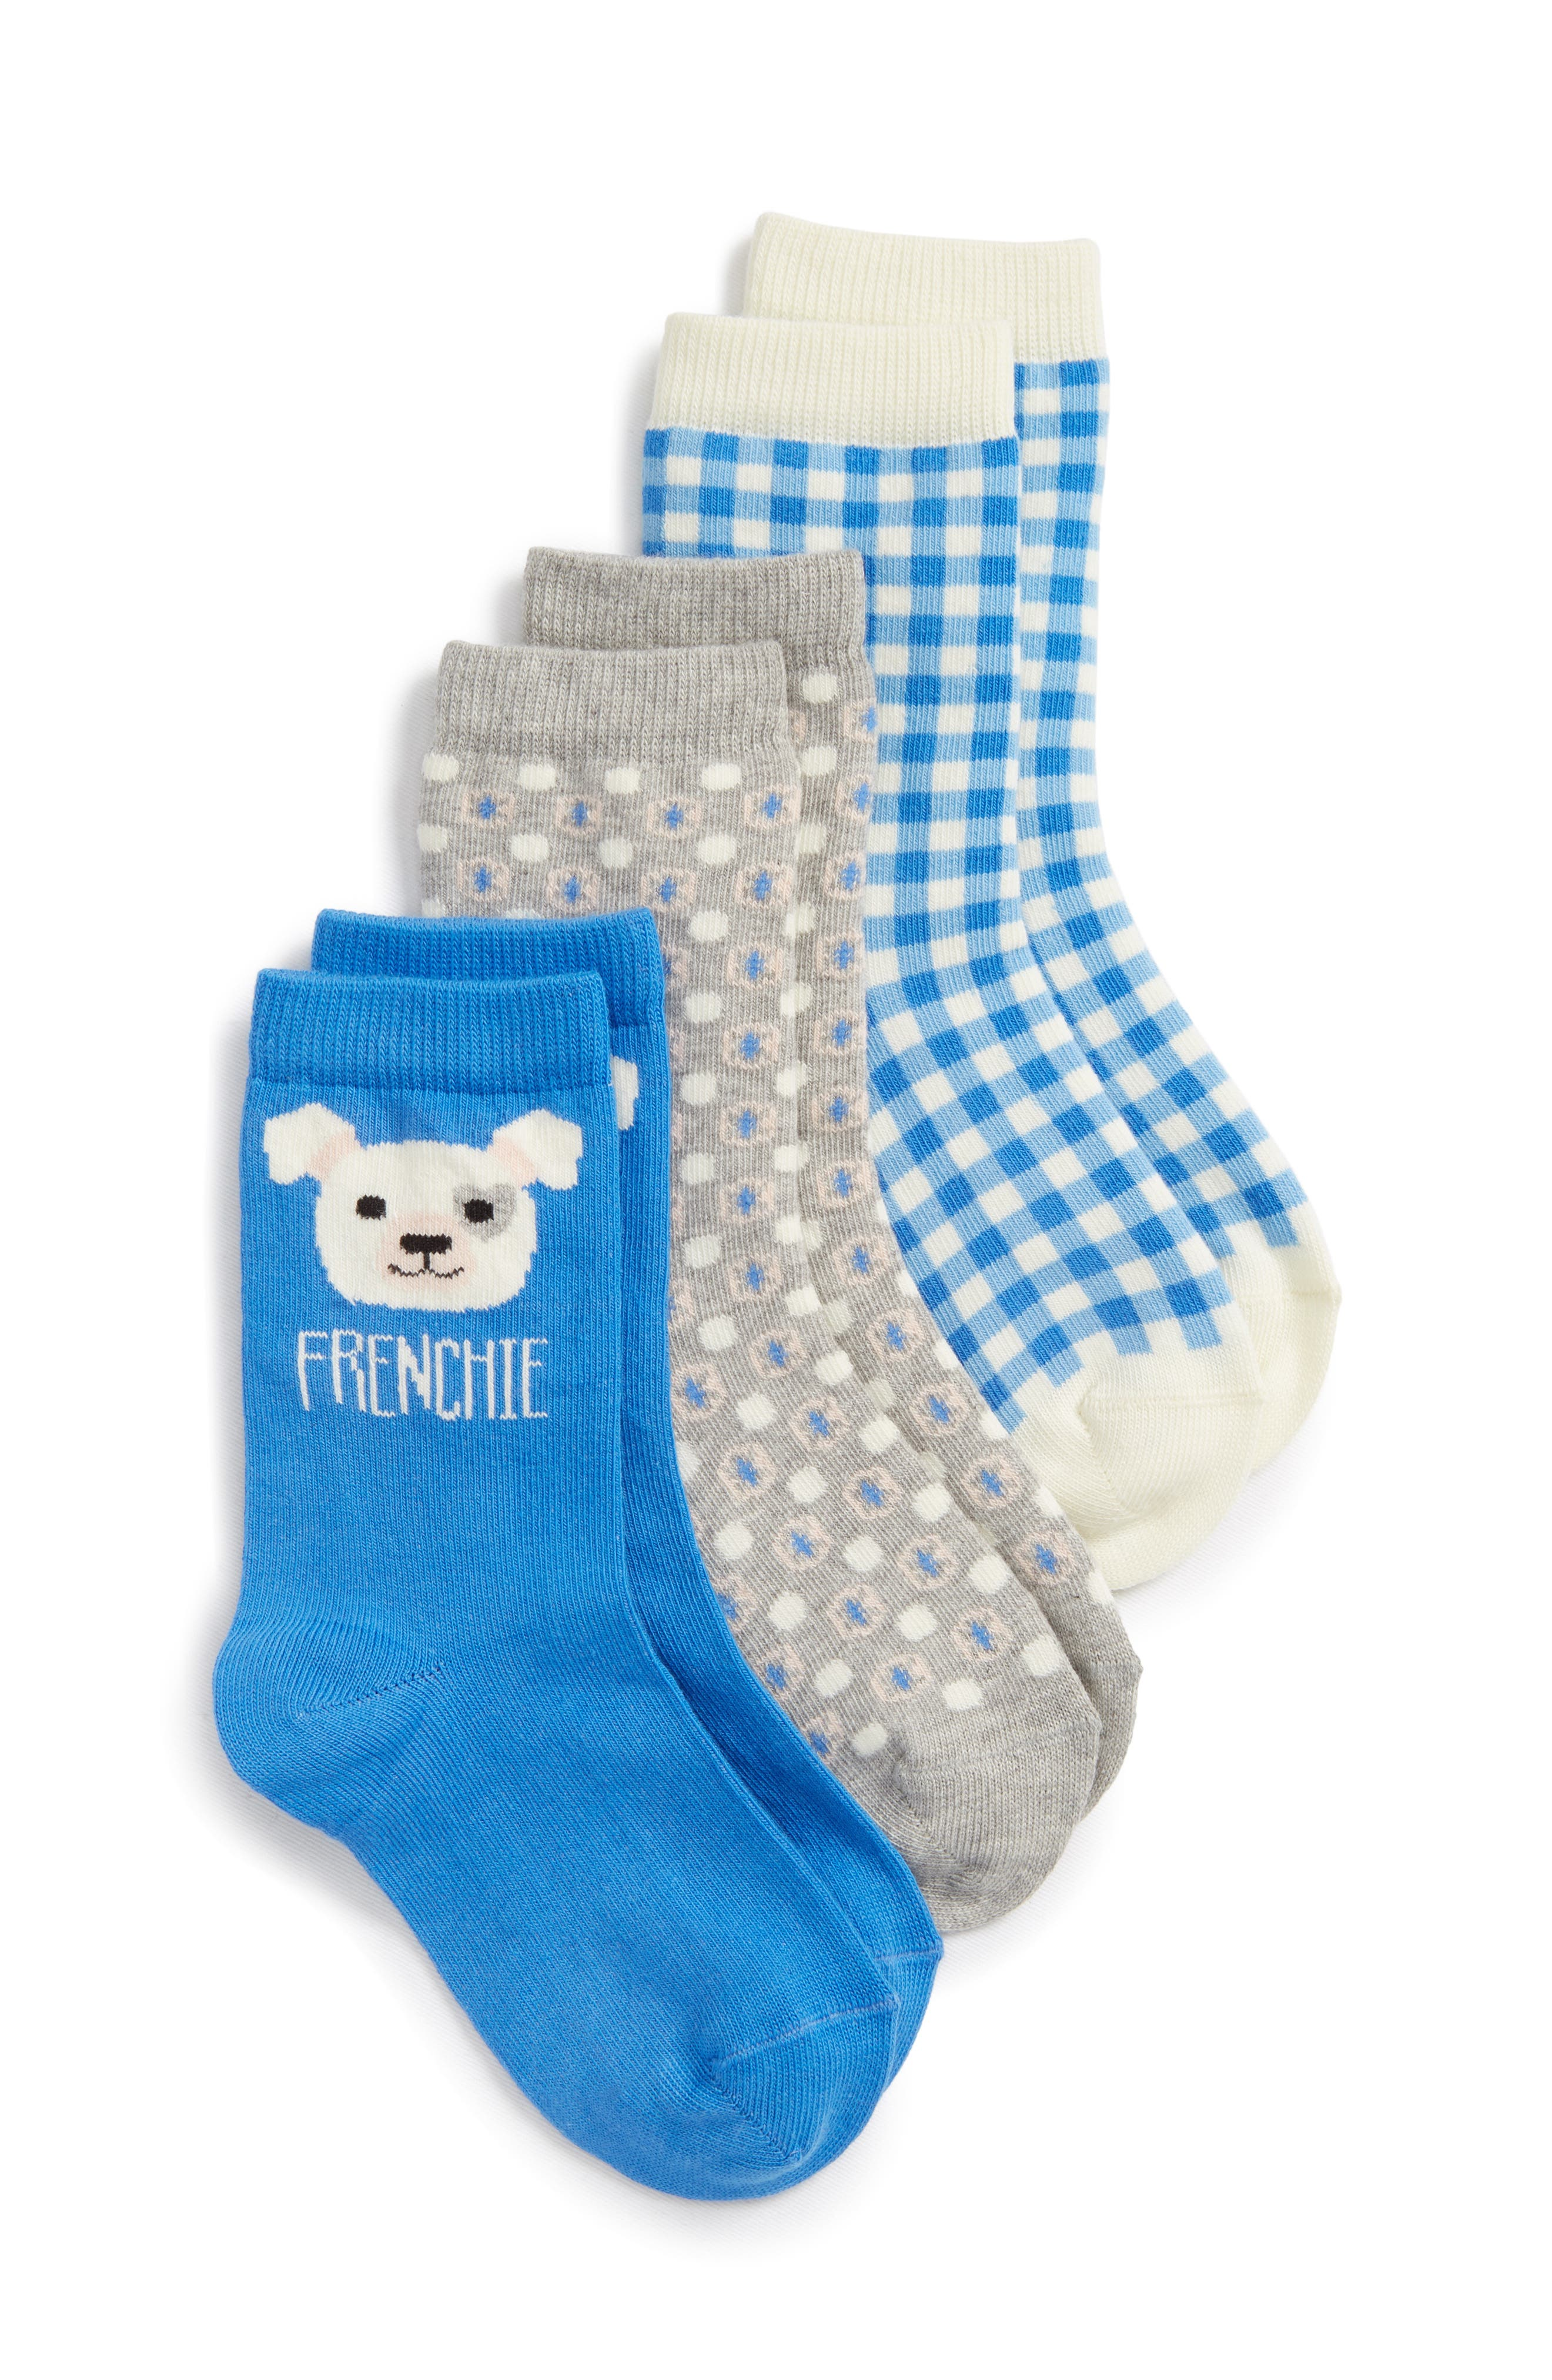 Frenchie 3-Pack Crew Socks,                         Main,                         color, BLUE CAMP